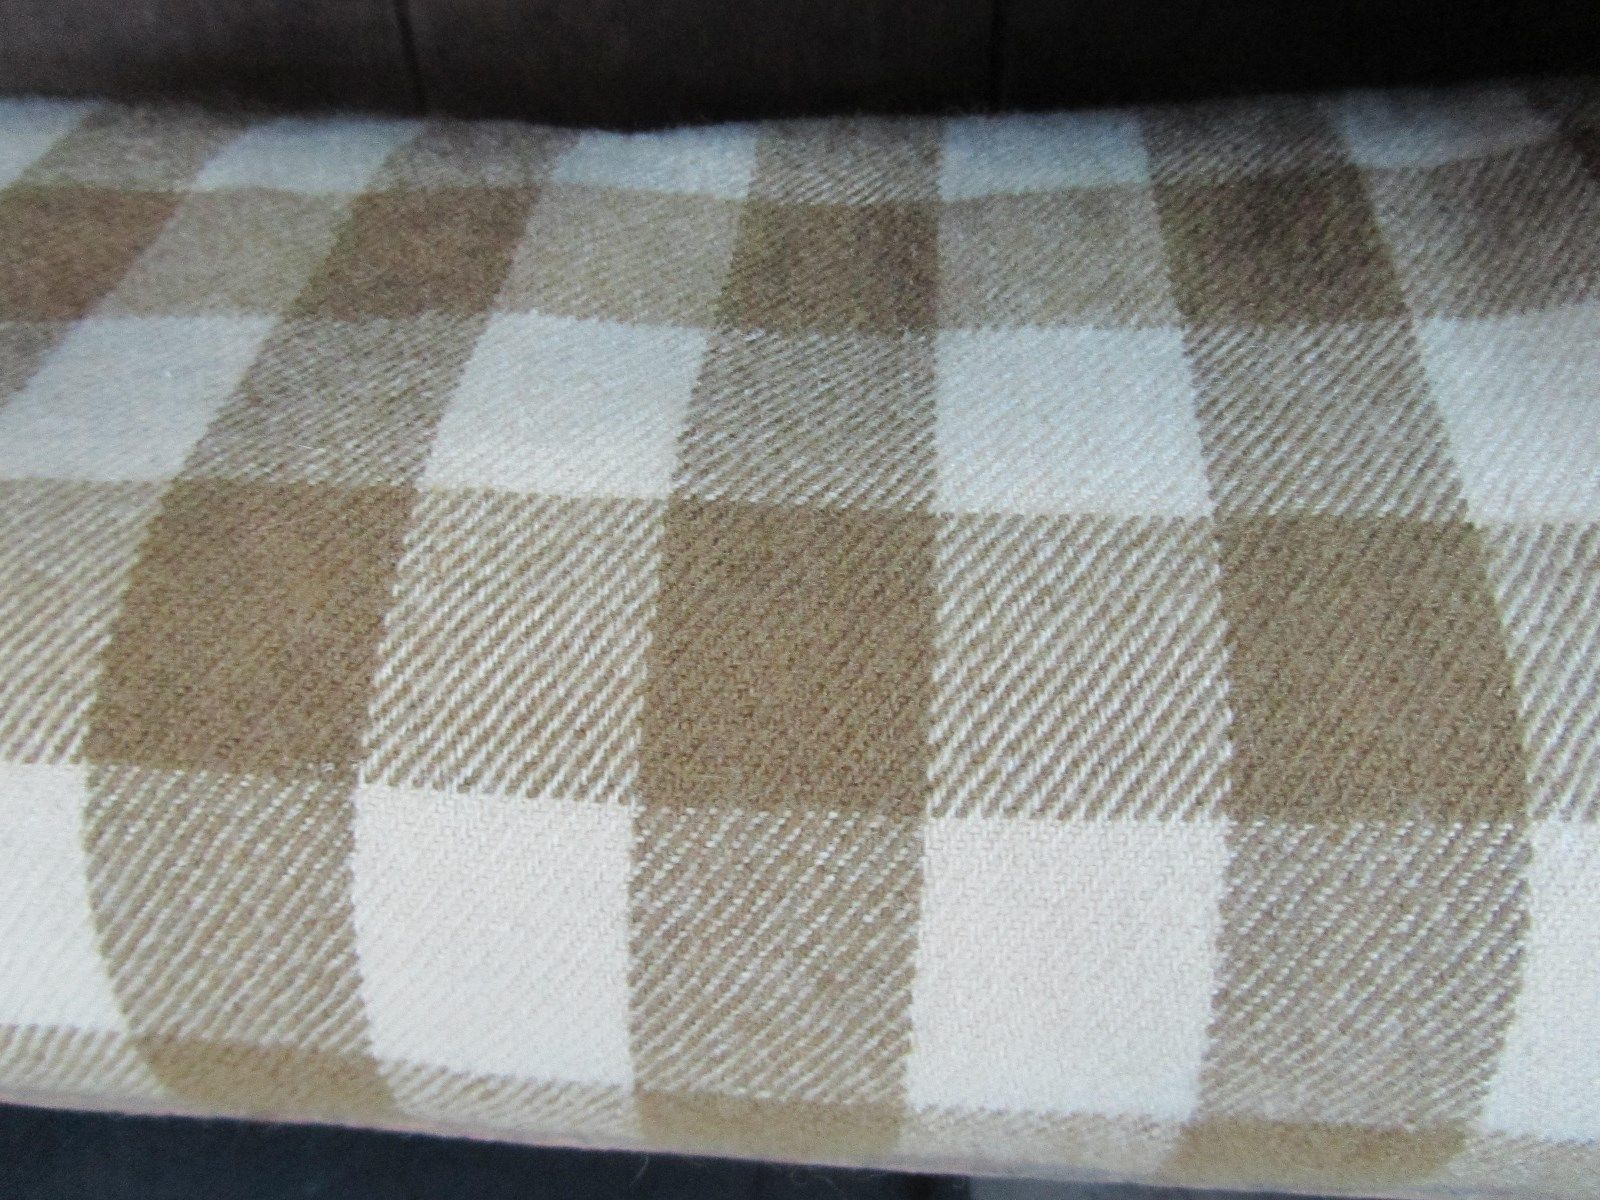 Early Antique Wool Plaid Blanket Cream Khaki Color 67 x 68 AAFA | eBay